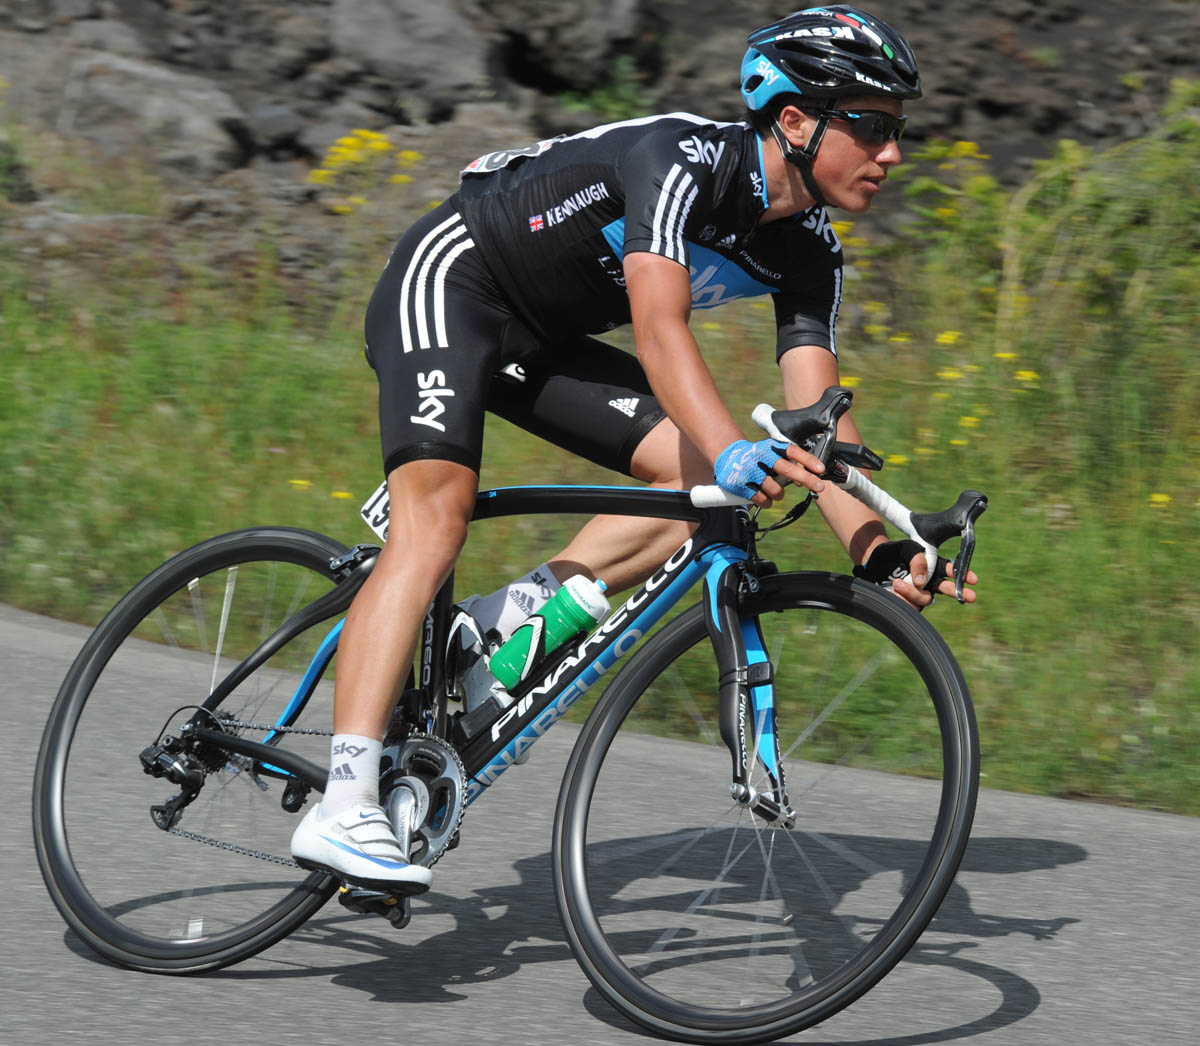 Peter Kennaugh, Giro d